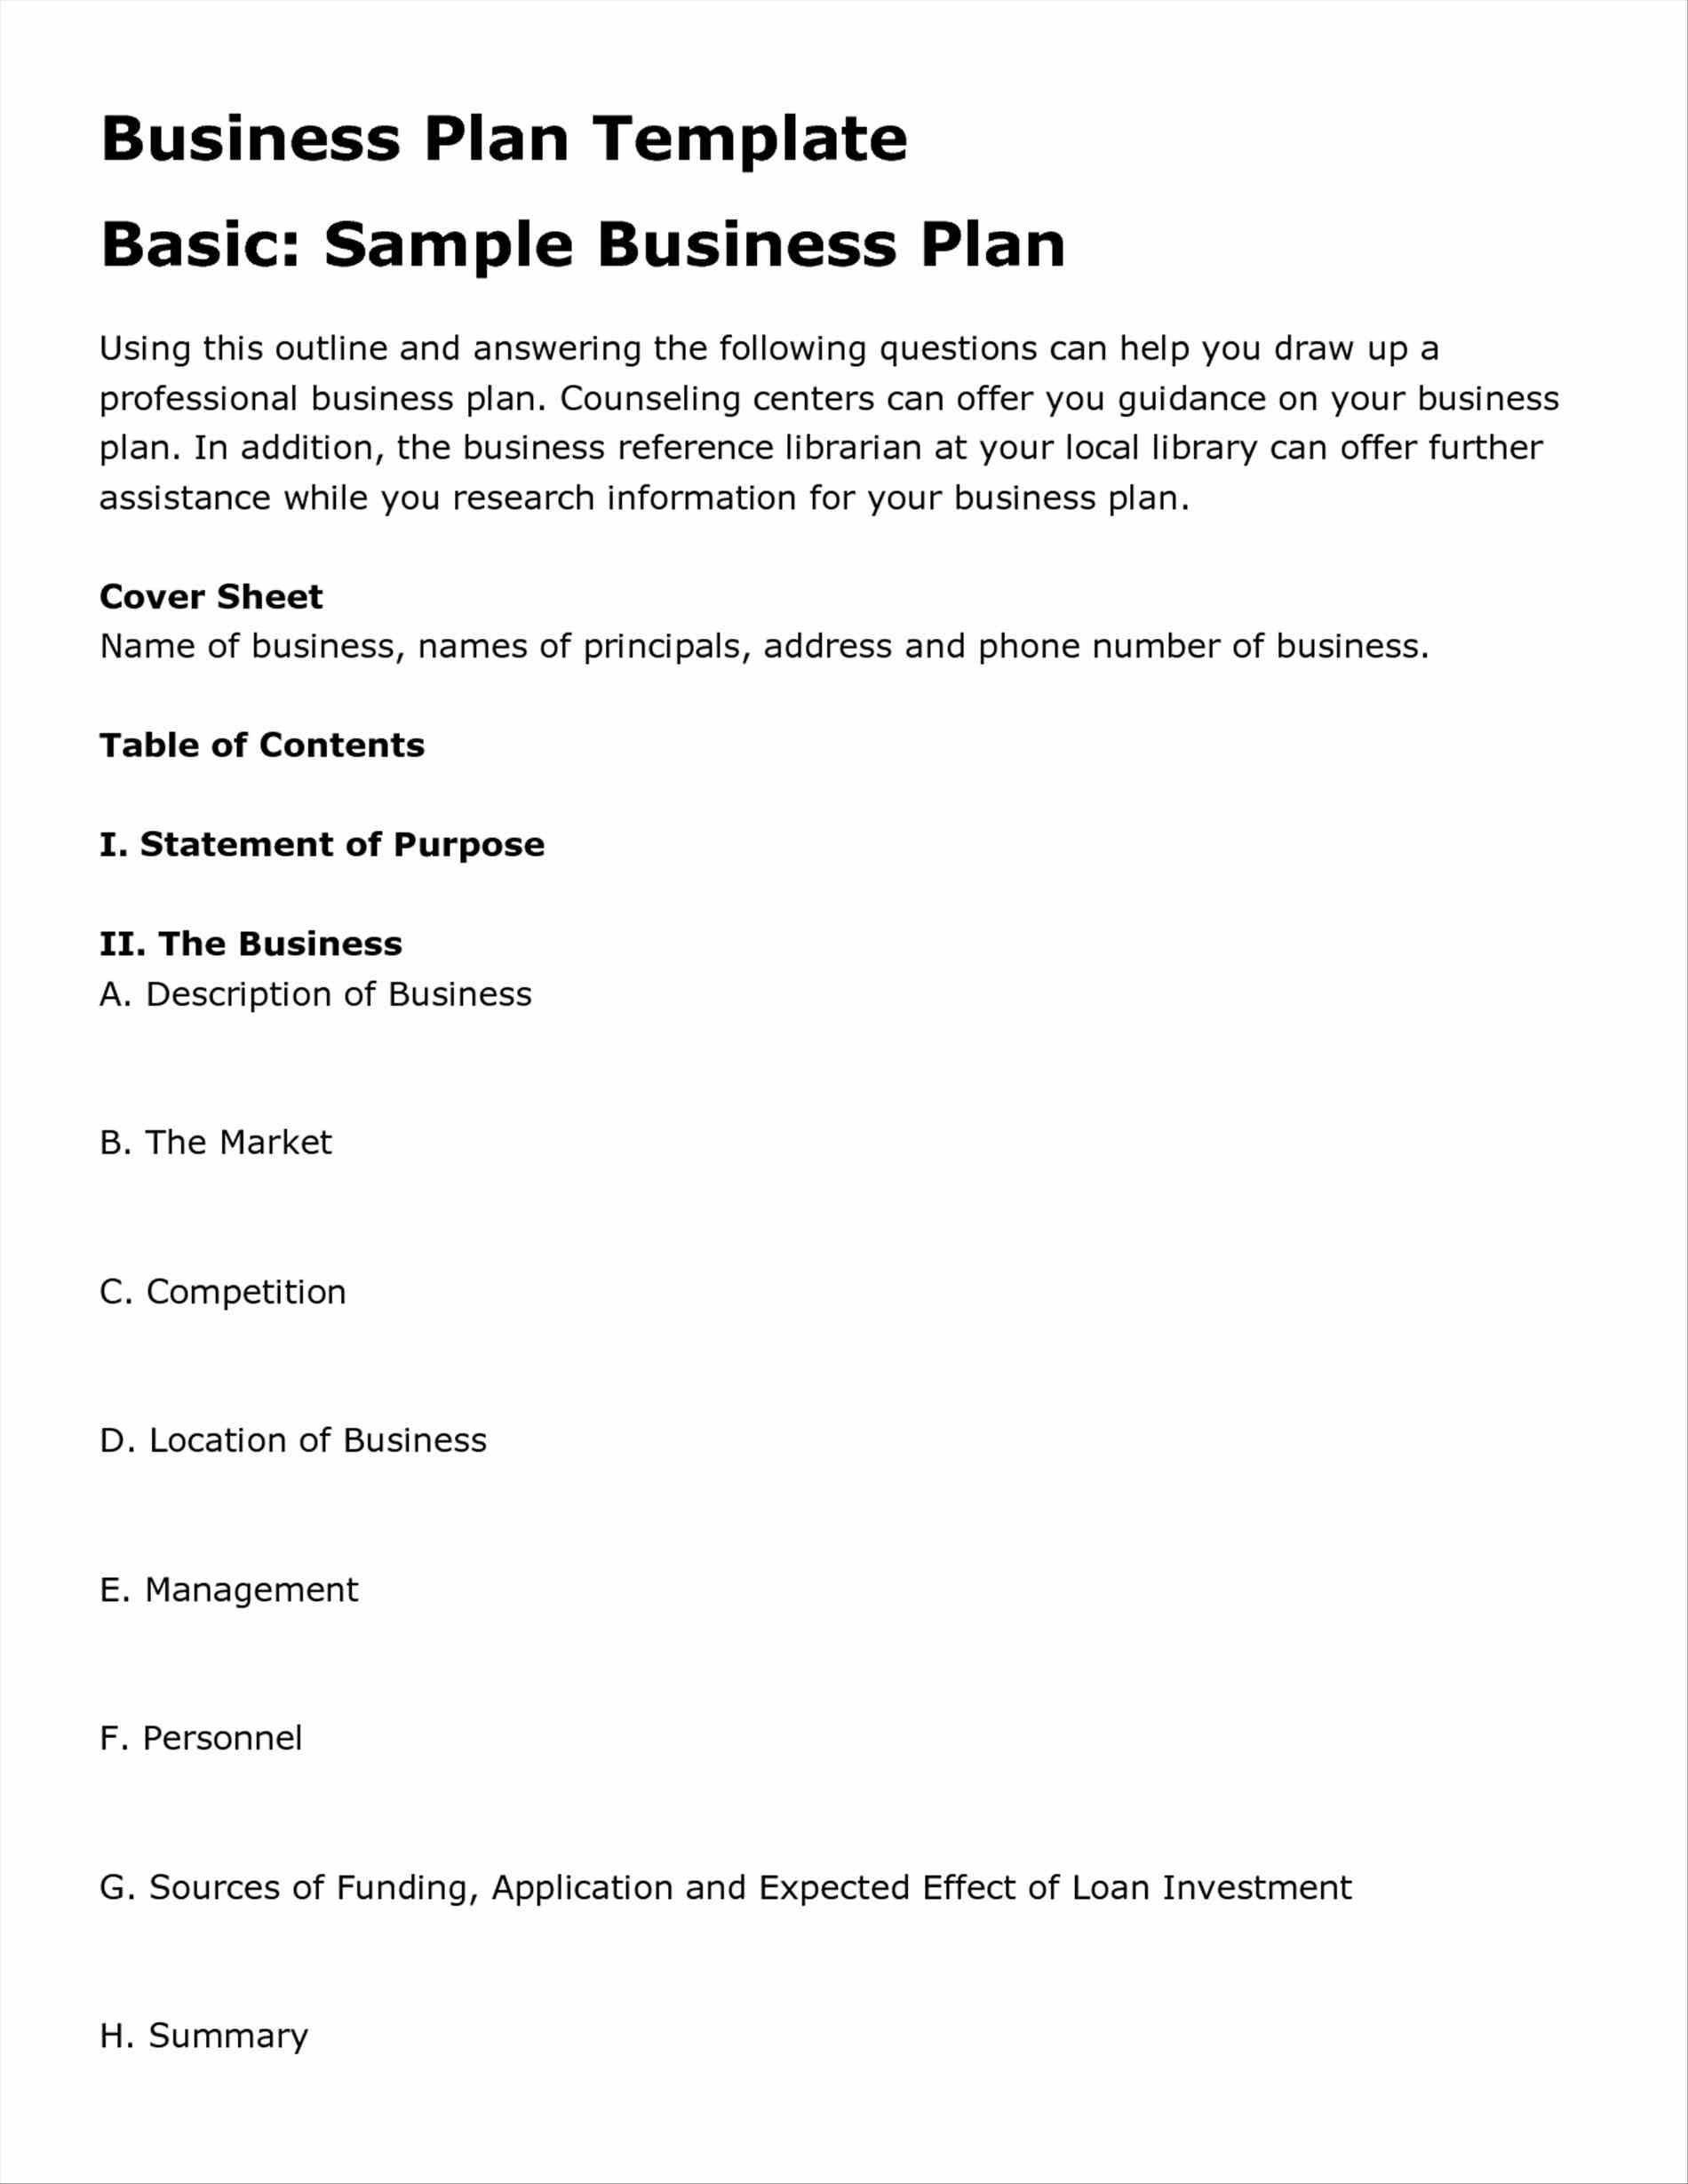 Business plan template restaurant templates in word excel pdf free business plan template restaurant templates in word excel pdf free cafe business plan template restaurant business plan templates in word excel cheaphphosting Image collections